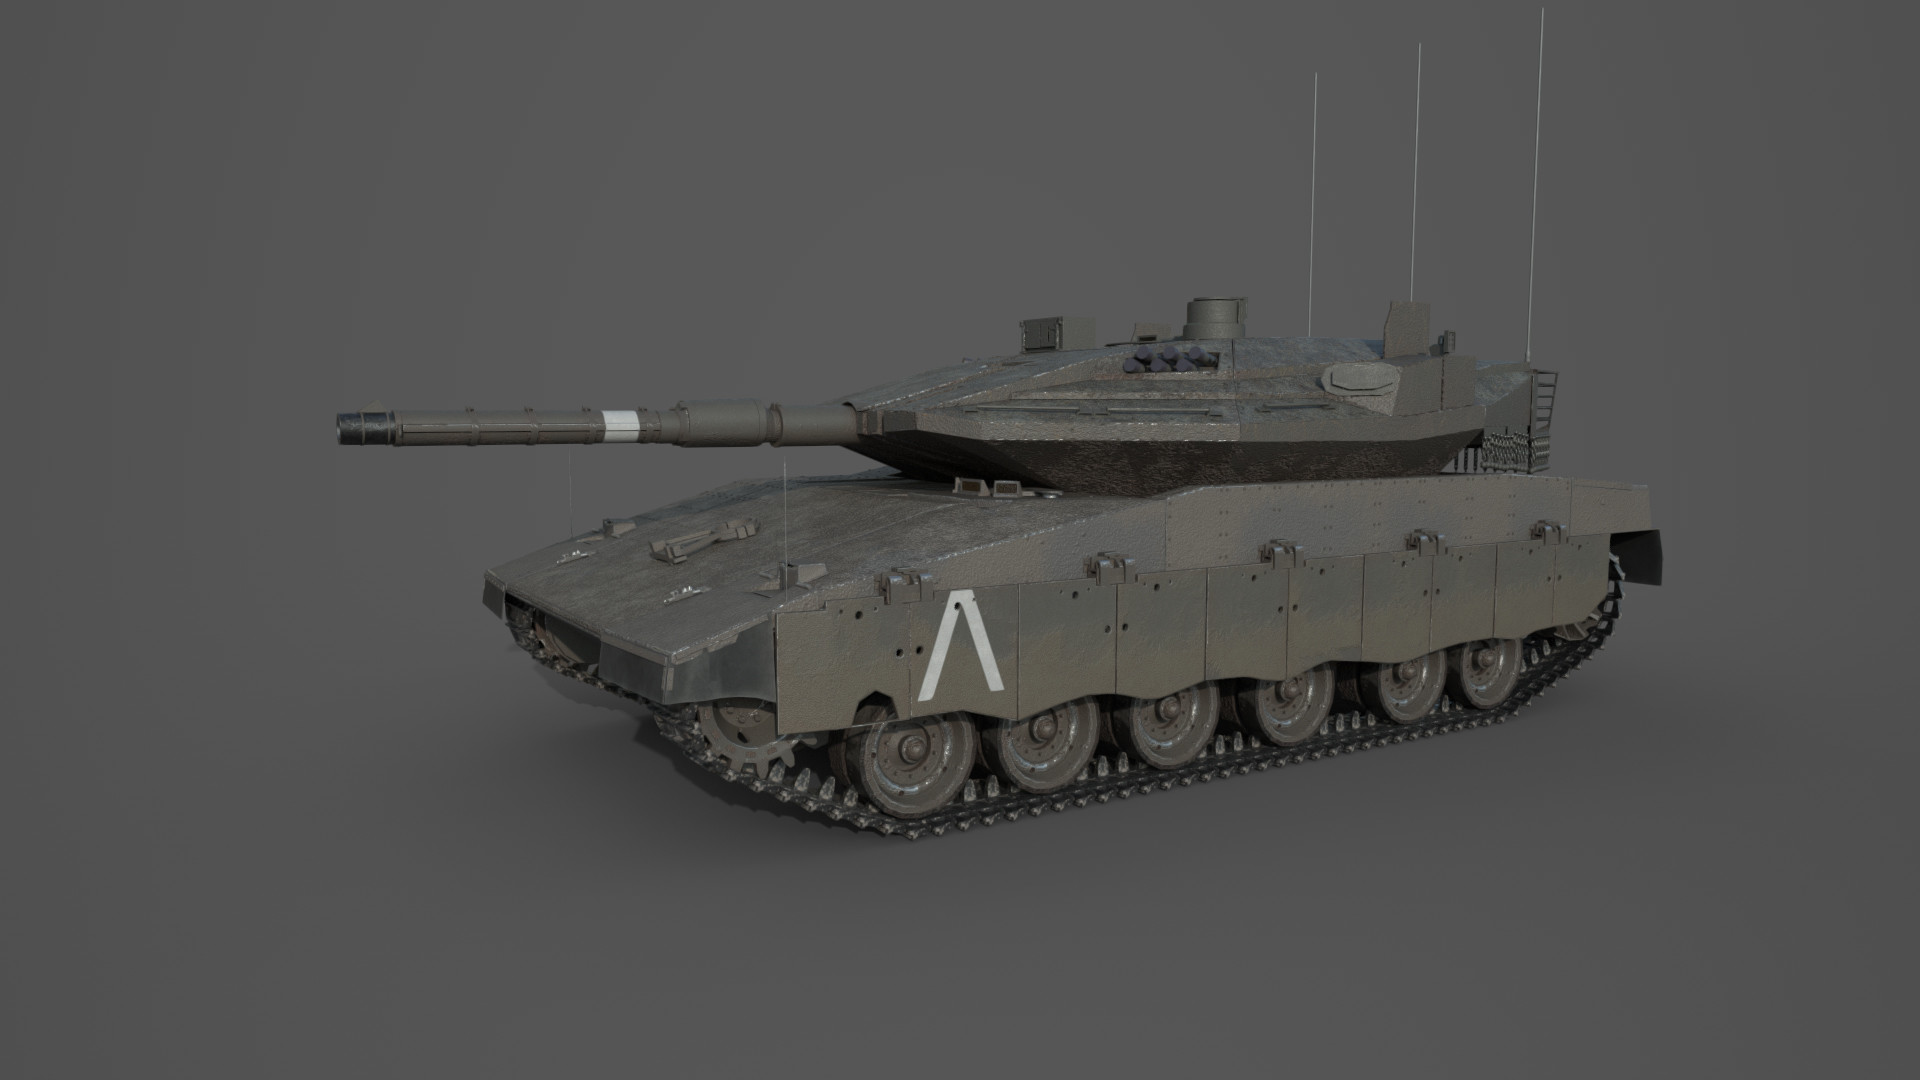 Updated PBR texture. 1/4 Little info about the tank skin: Top surface contains sand to better blend into the natural desert environment of the Middle East.